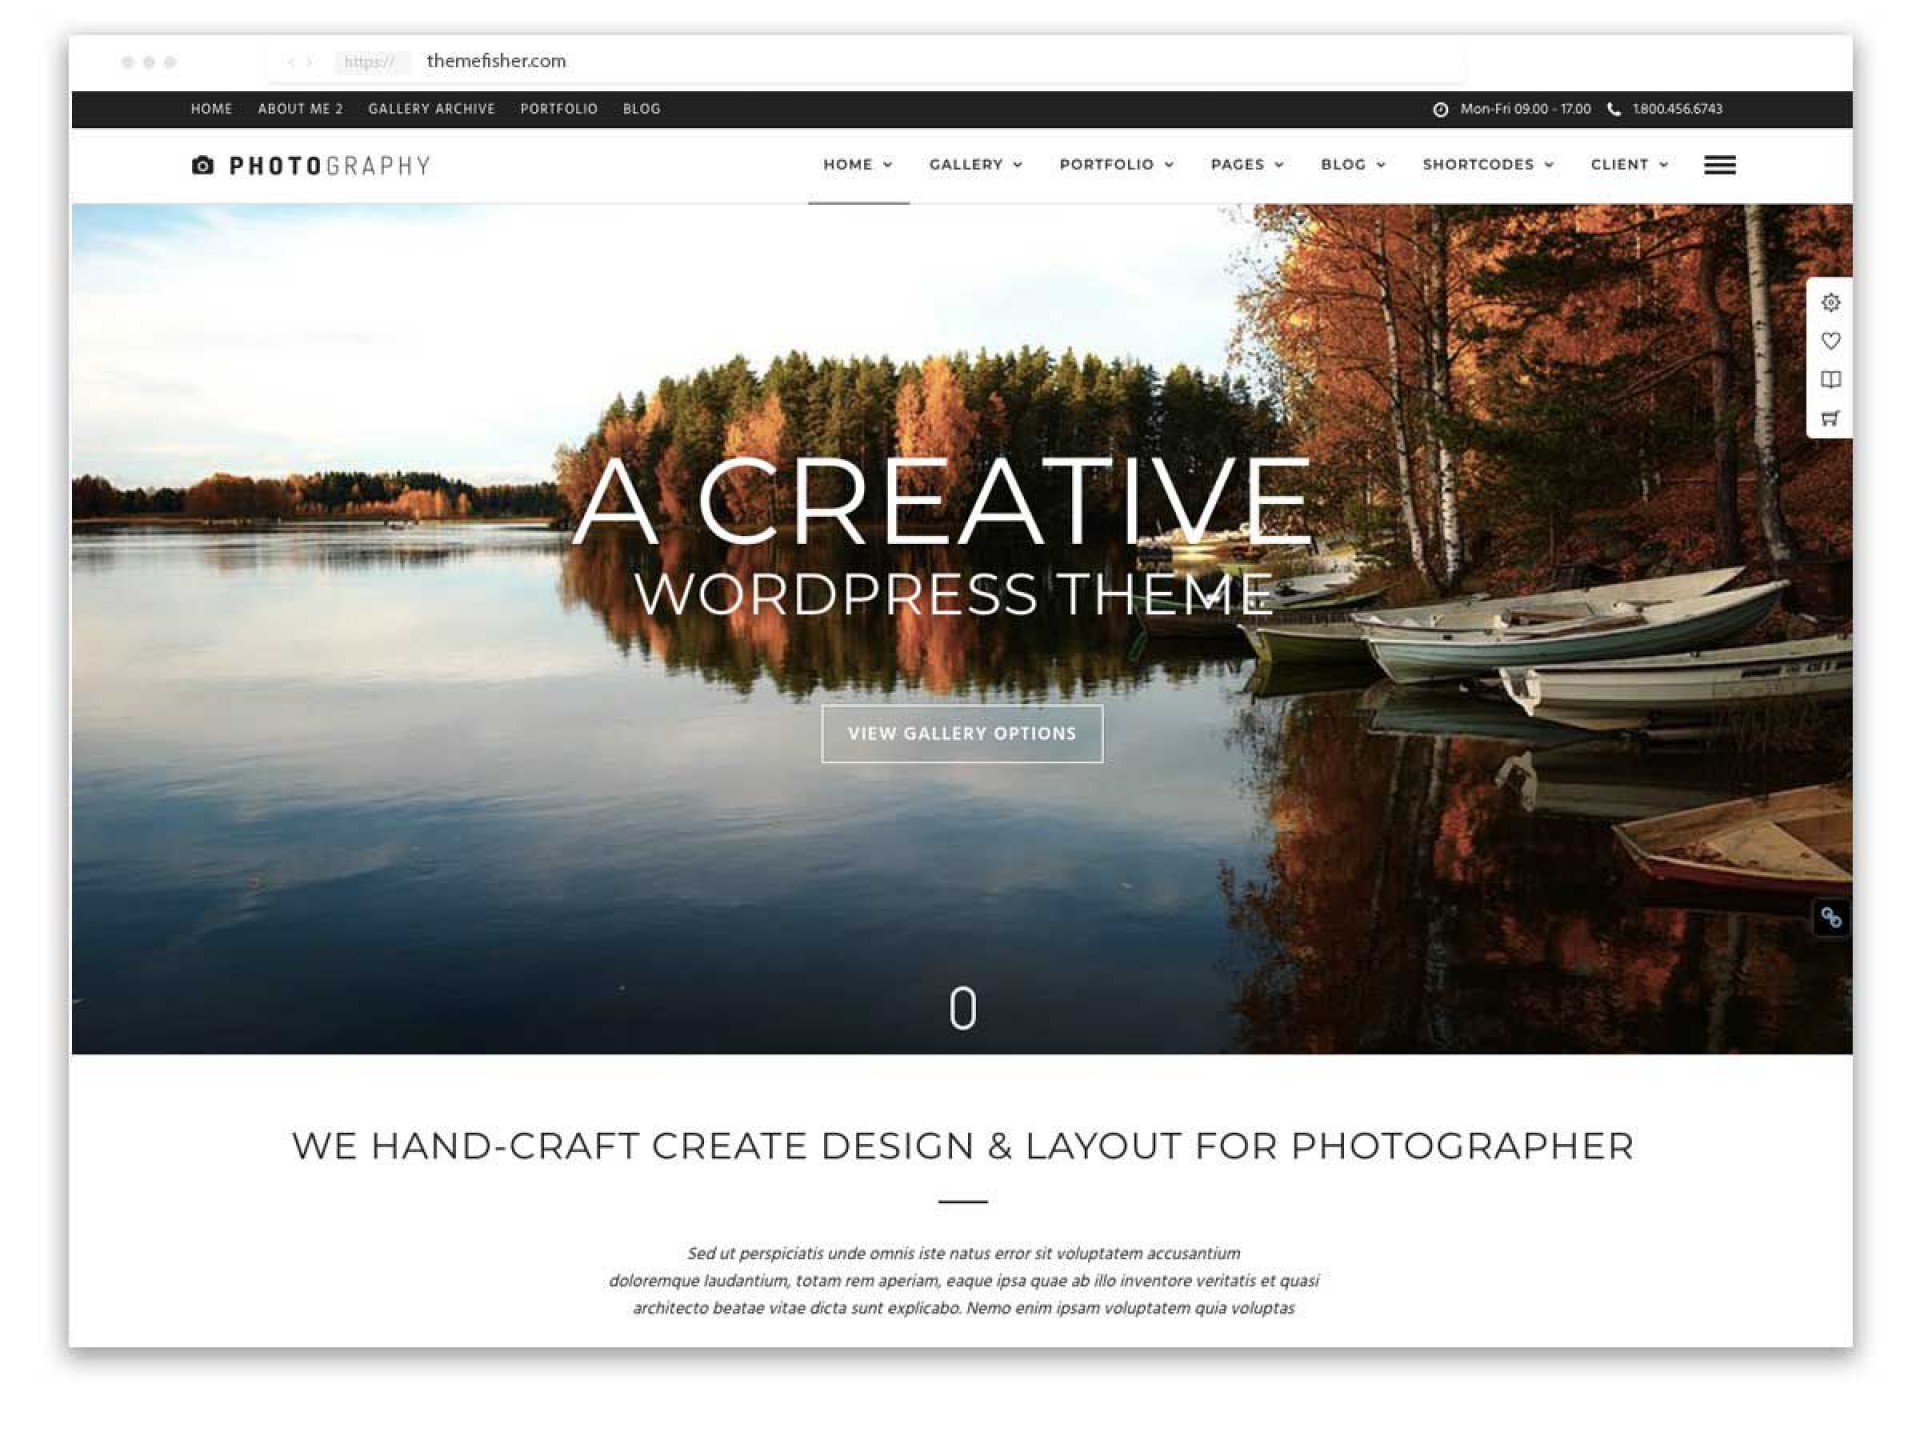 009 Wondrou Website Template For Photographer Photo  Photographers Free Responsive Photography Php Best1920